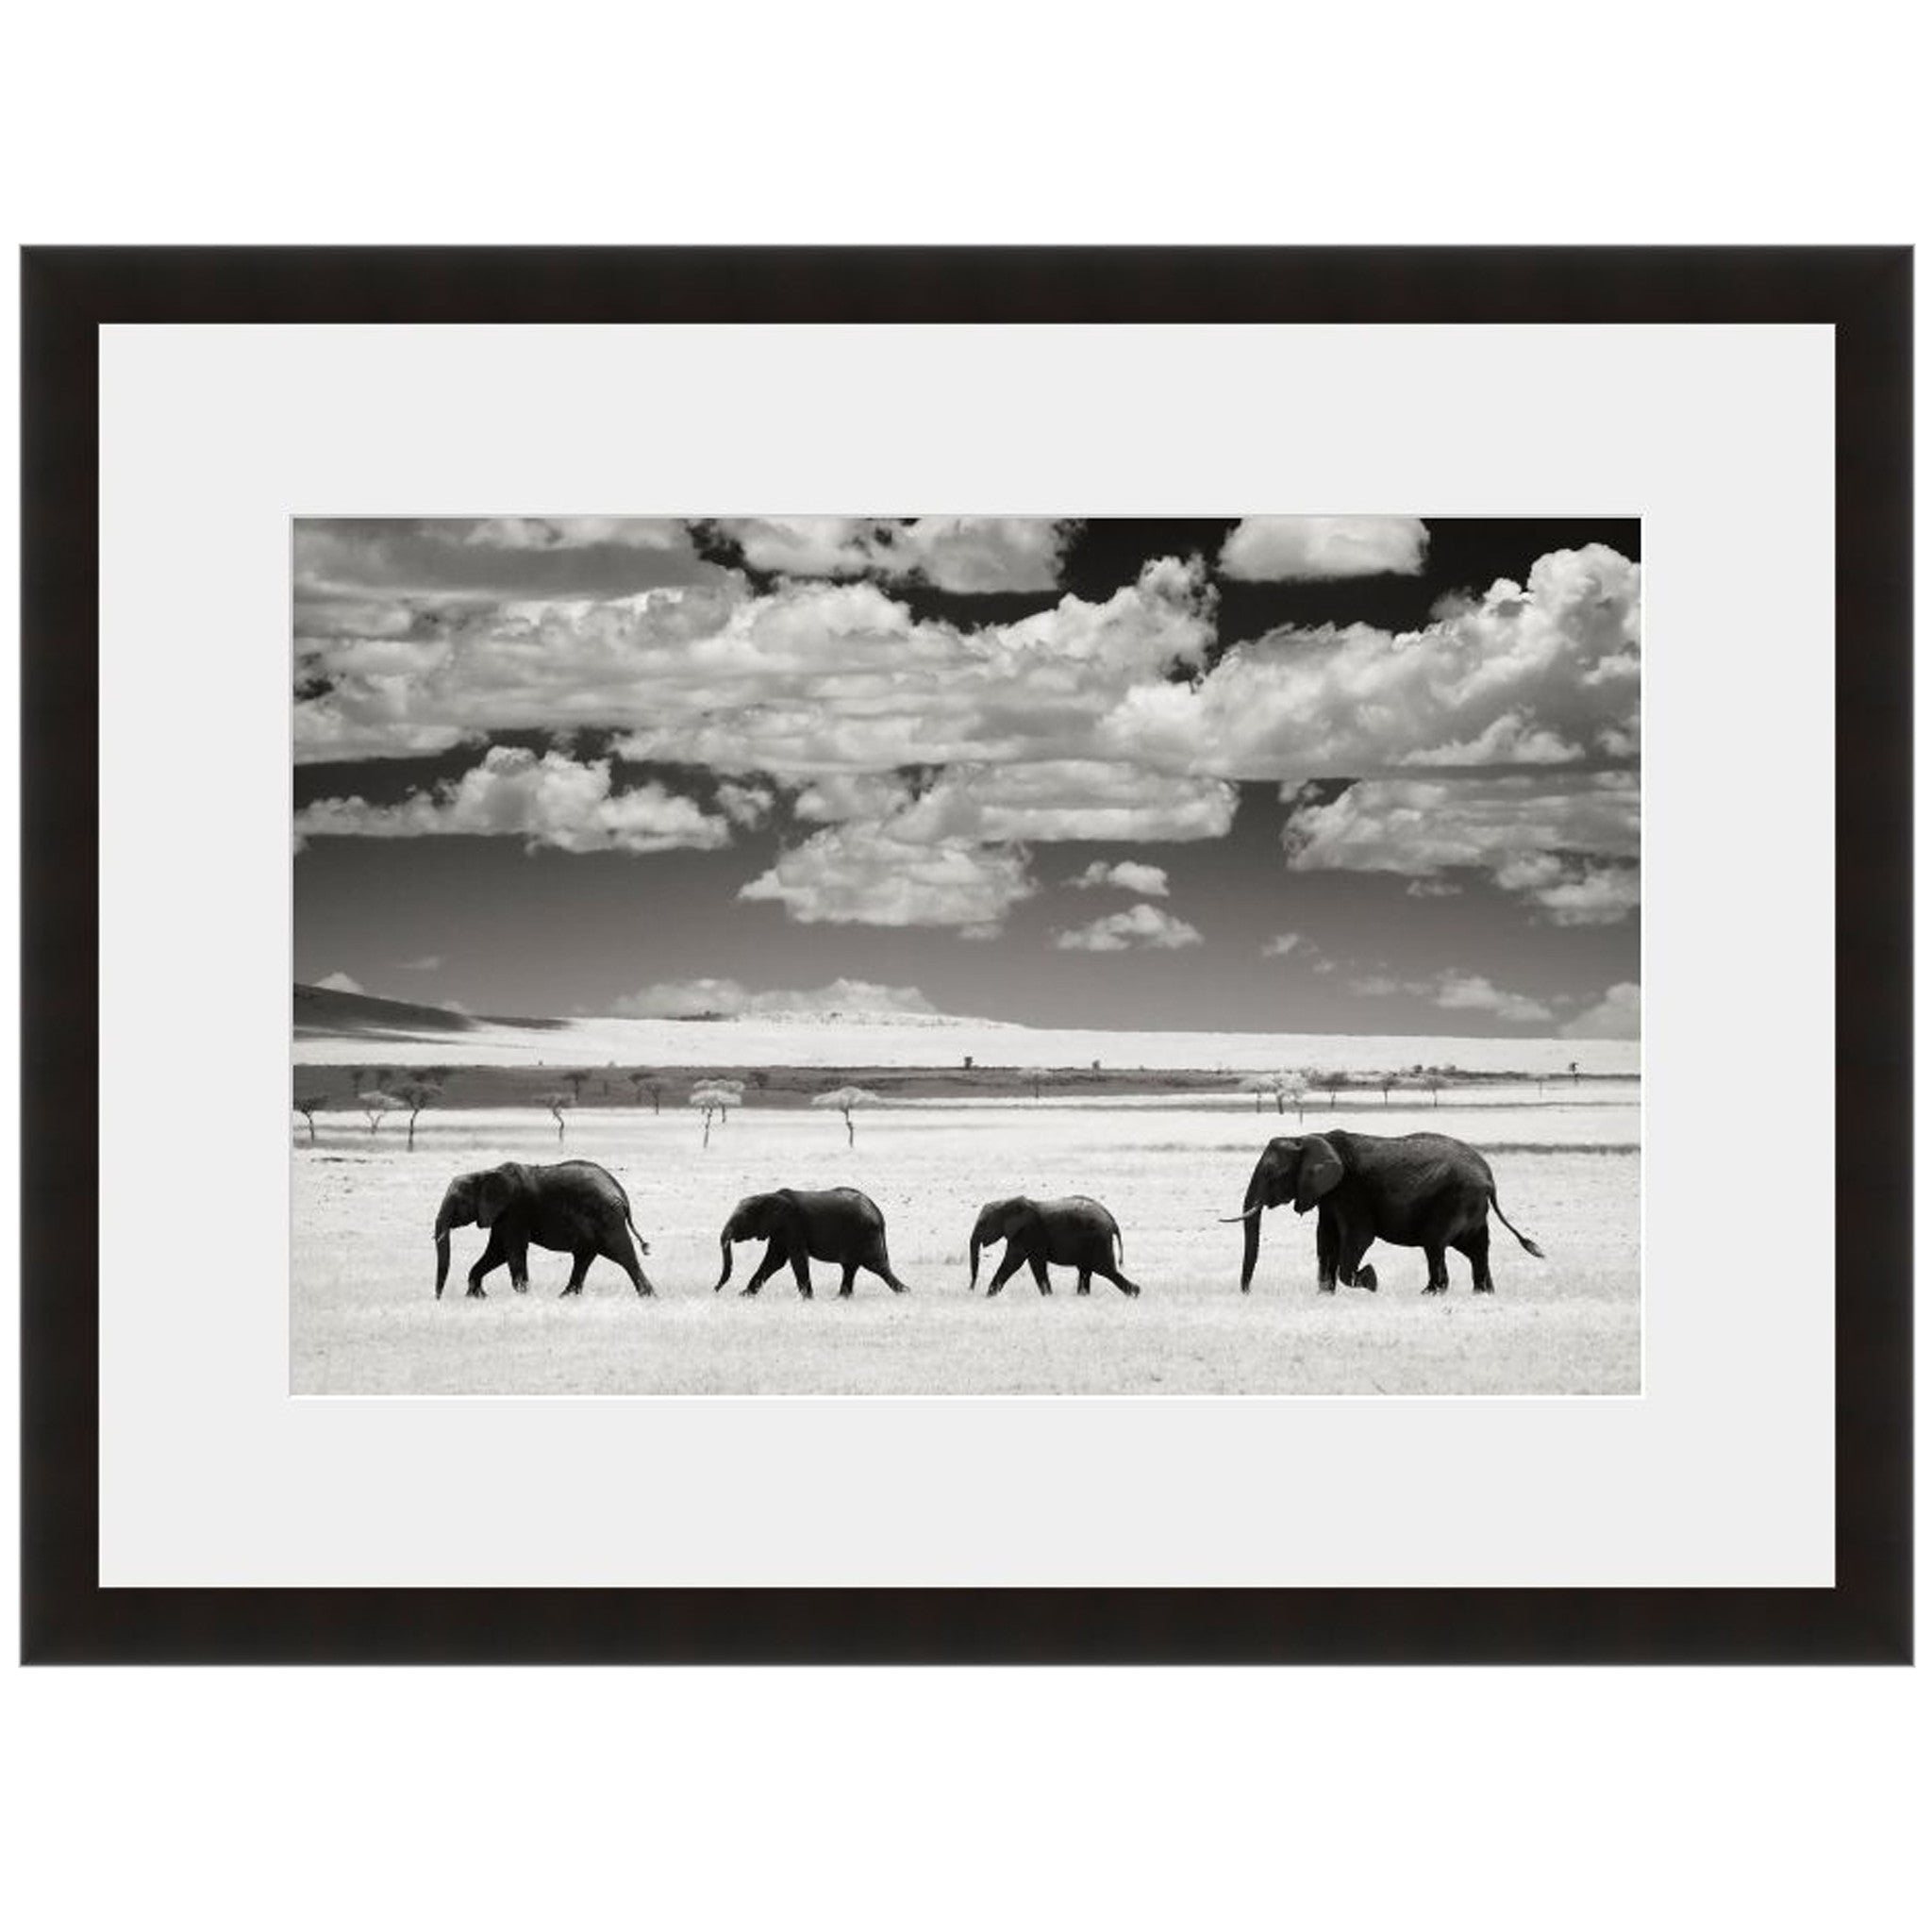 Elephant Chain - Fine Art Photograph by Andy Biggs - Framed Wall Art ...